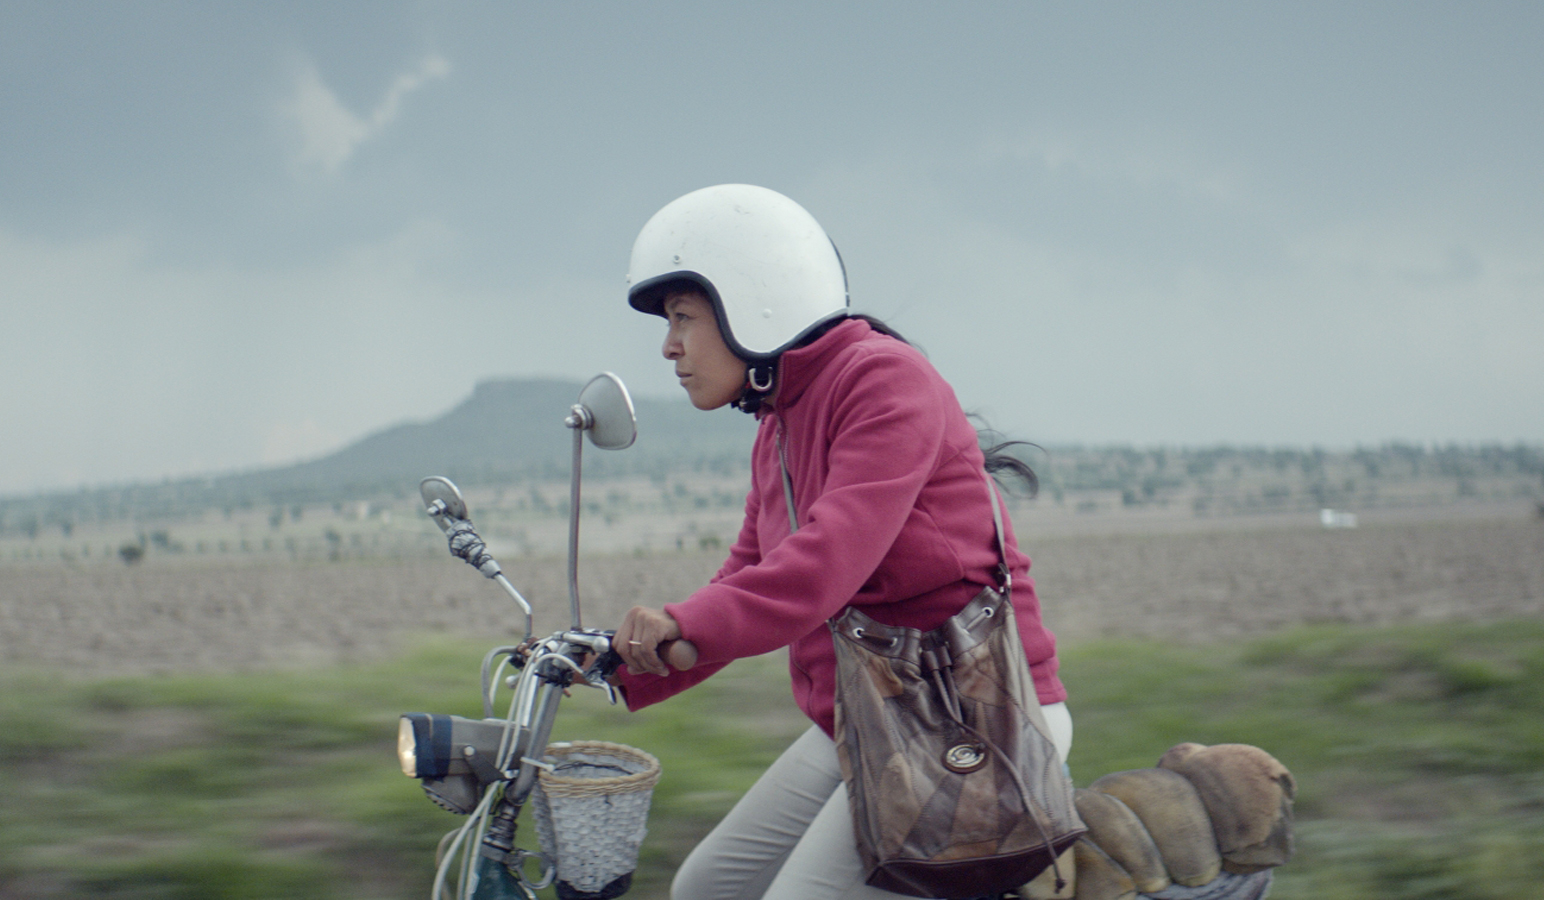 a woman on a motorbike driving down a scenic road